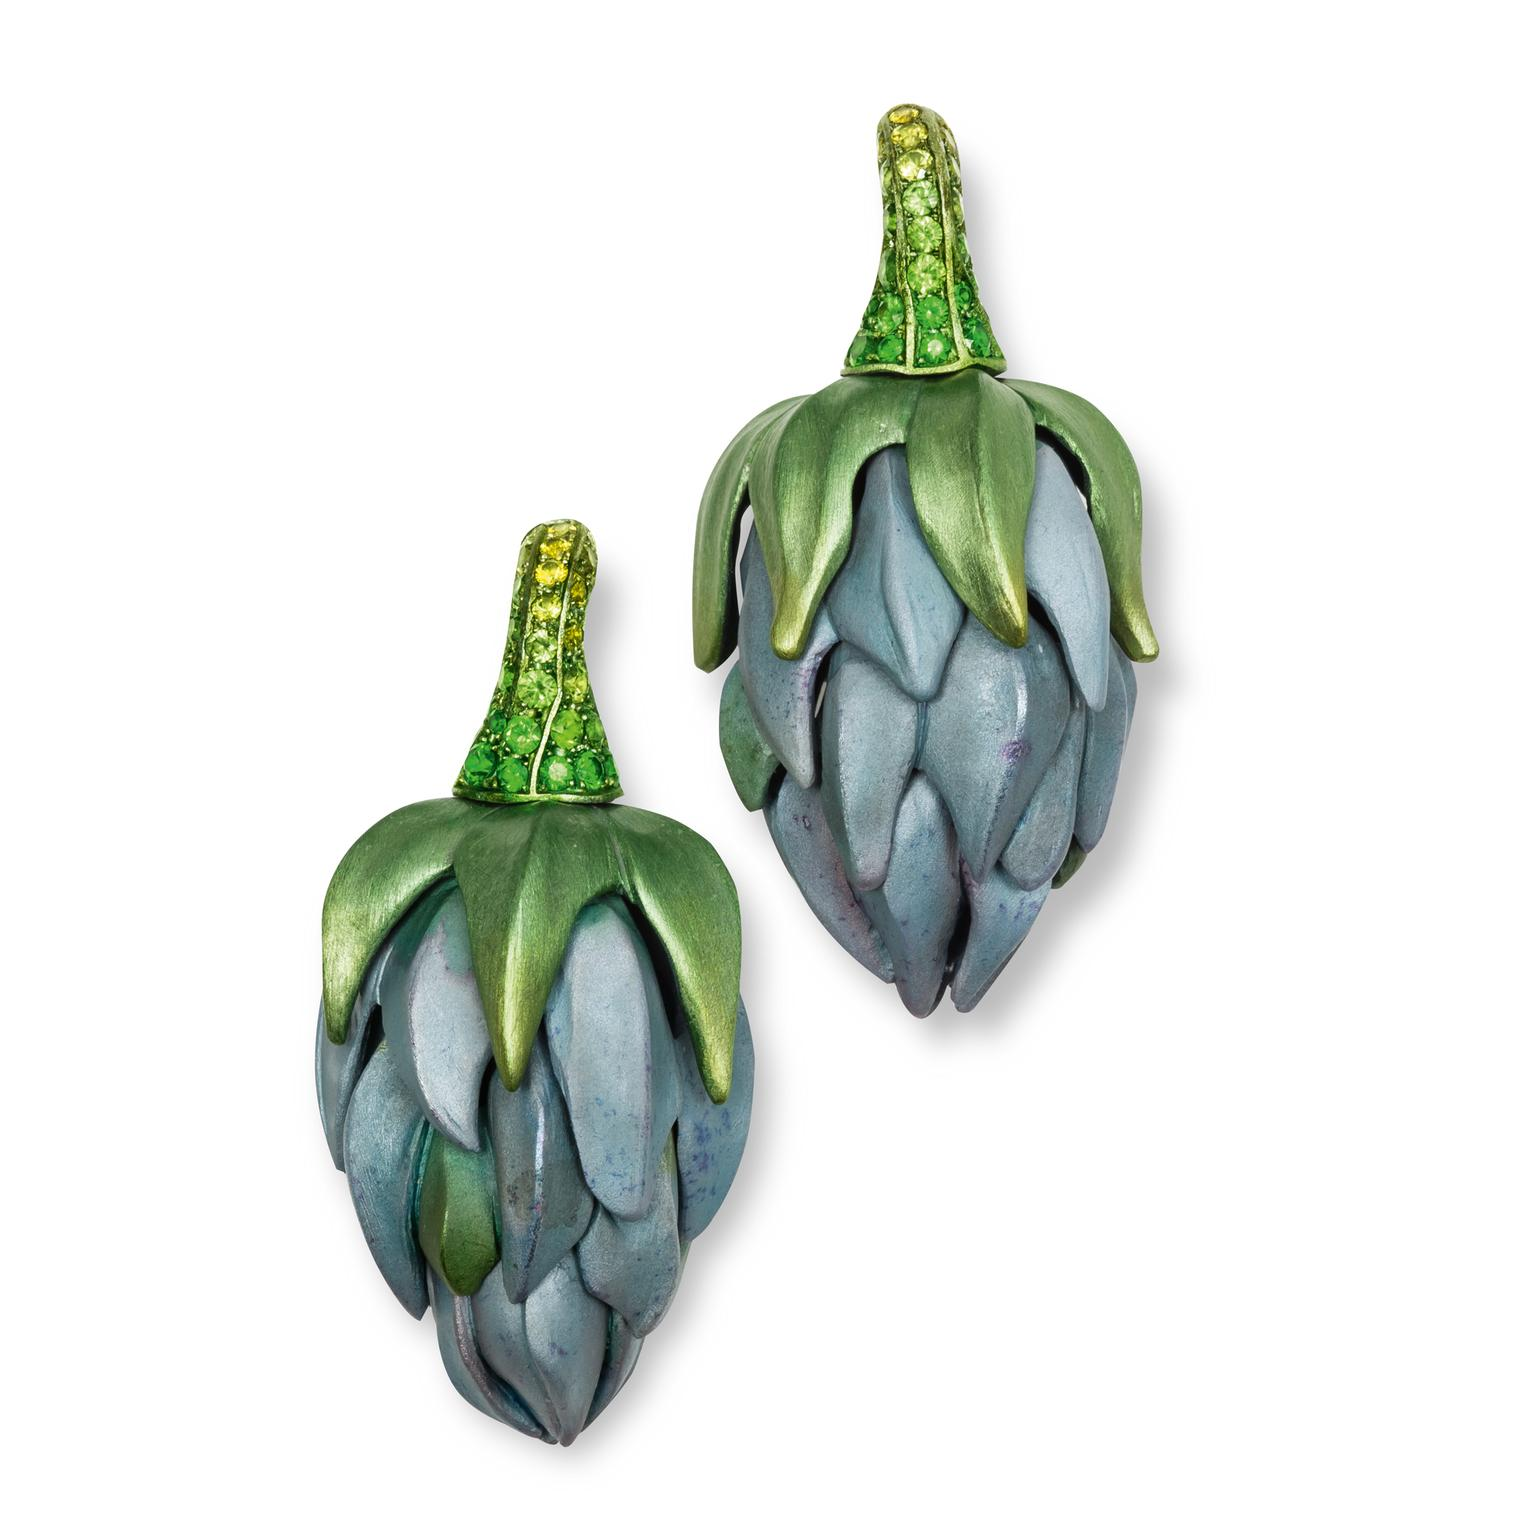 Hemmerle demantoid garnet aluminium earrings